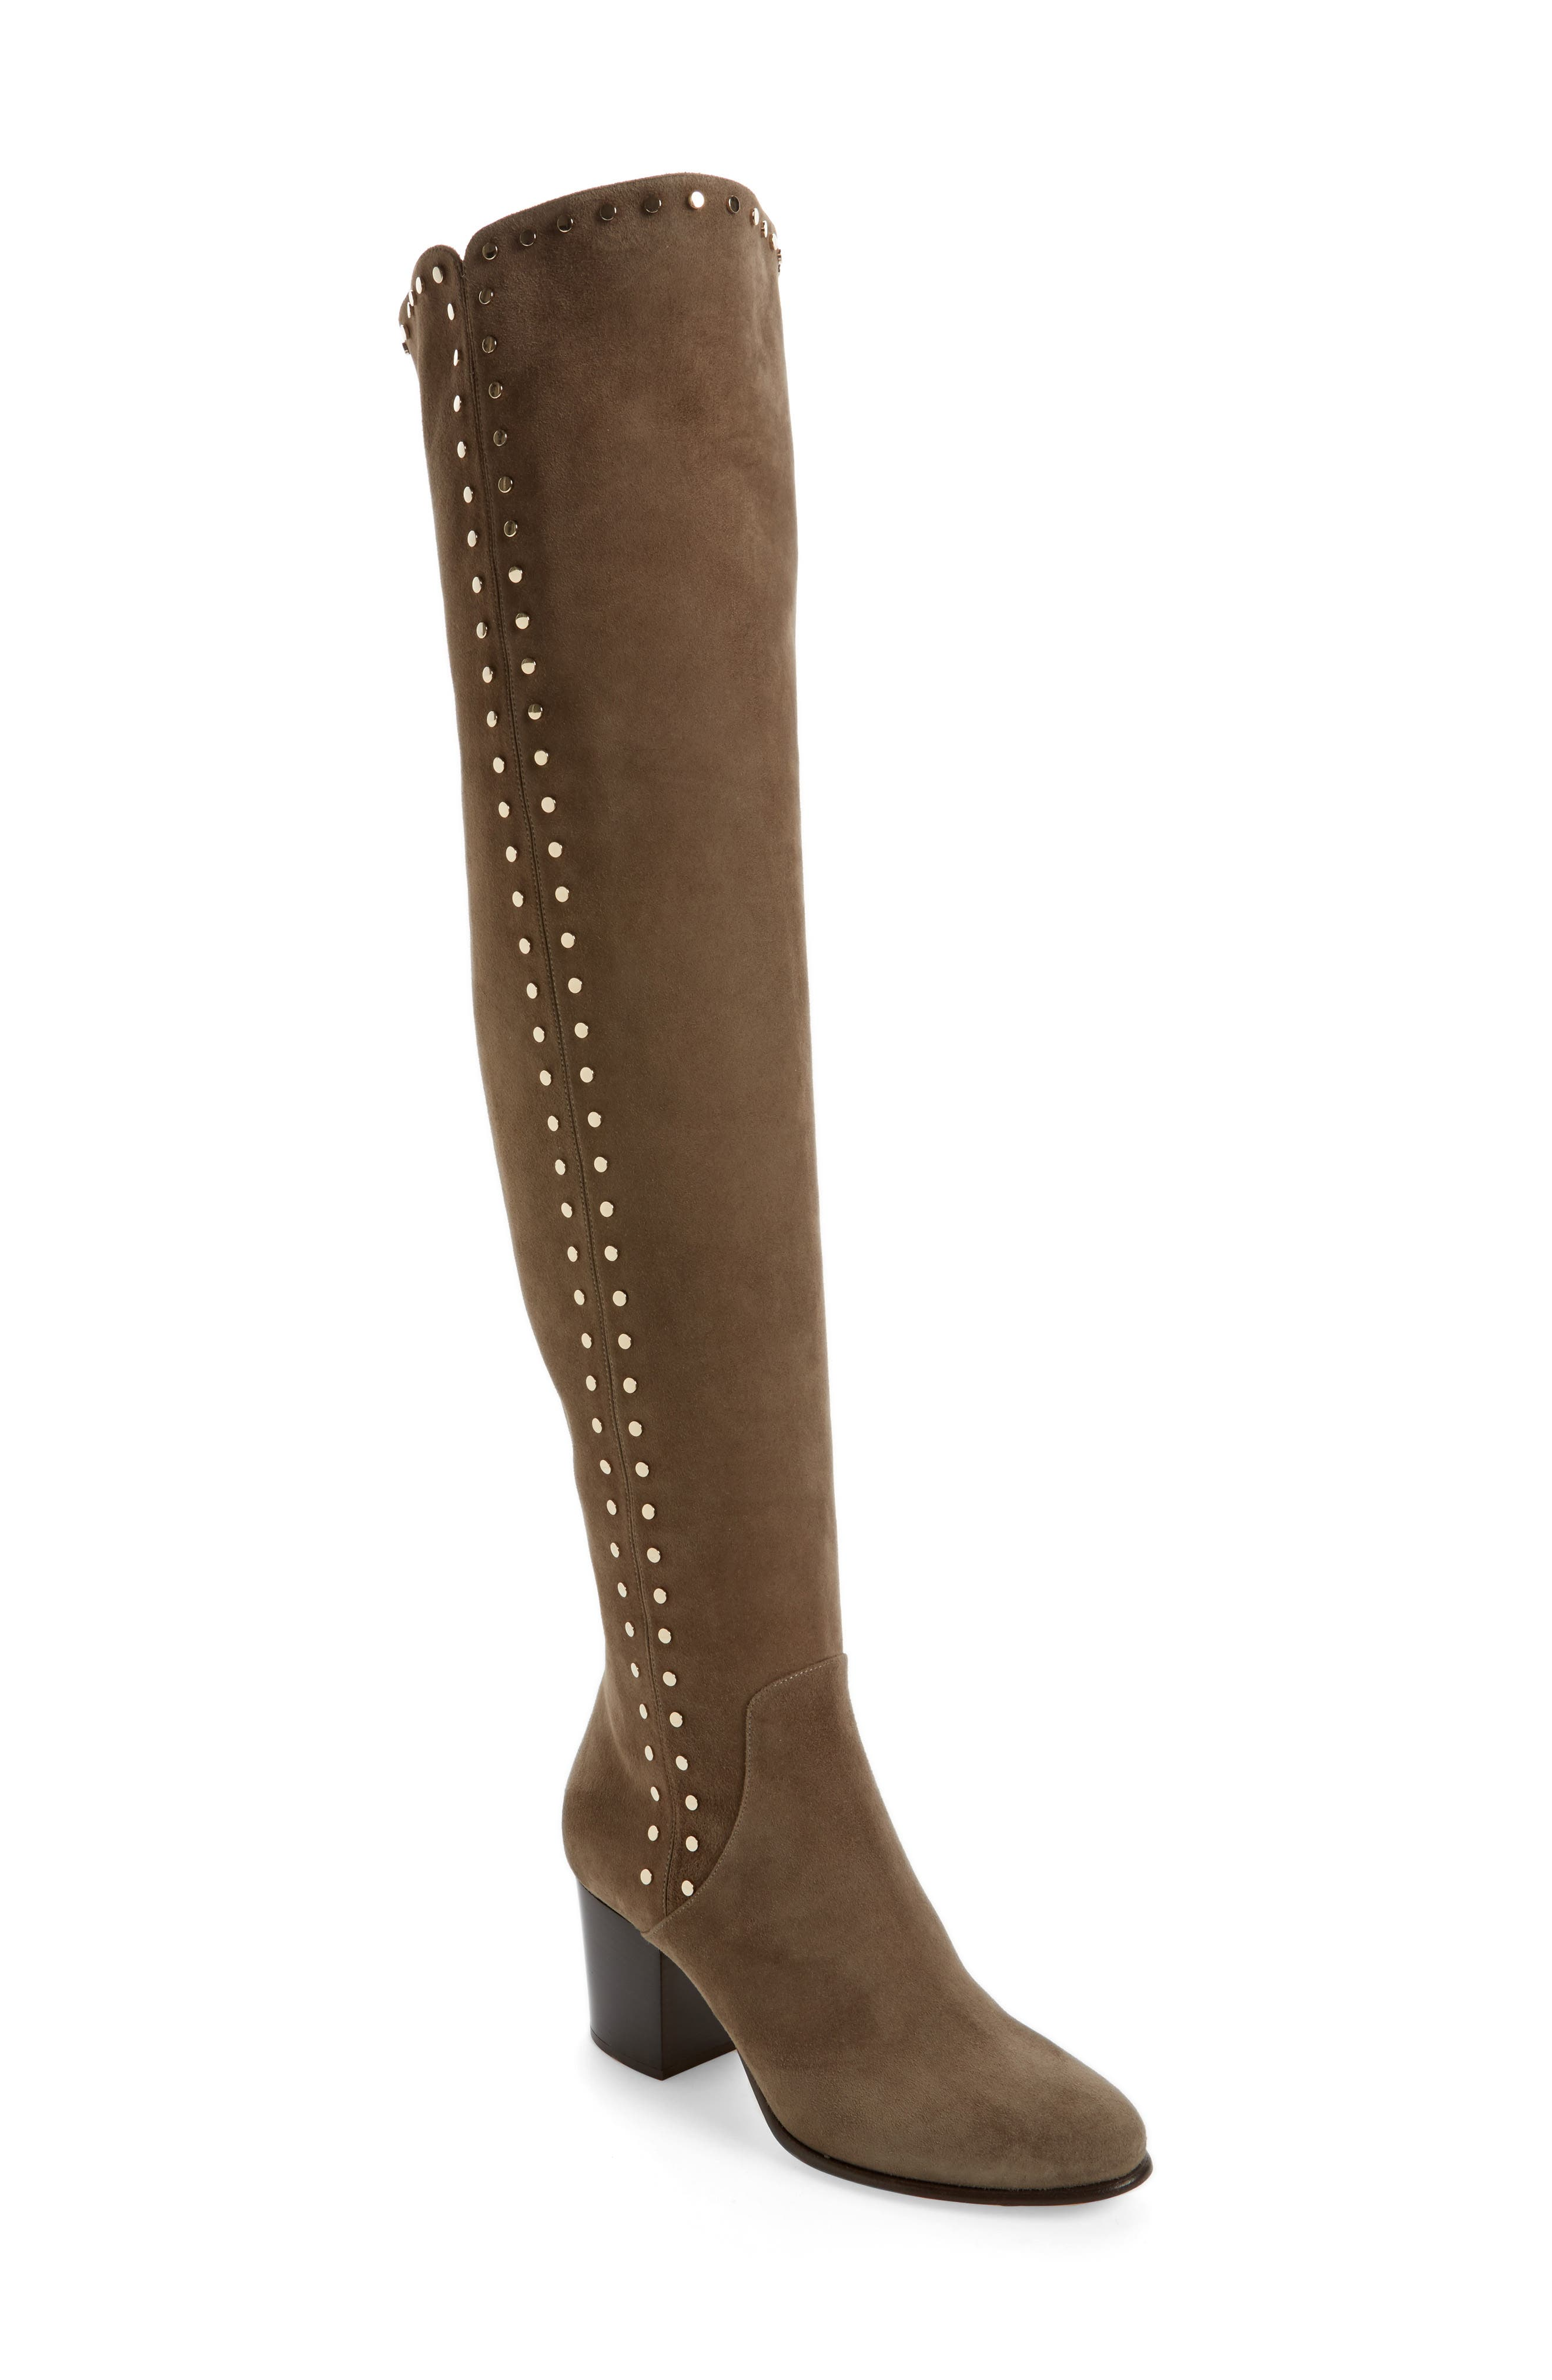 Main Image - Jimmy Choo Harlem Over the Knee Boot (Women)